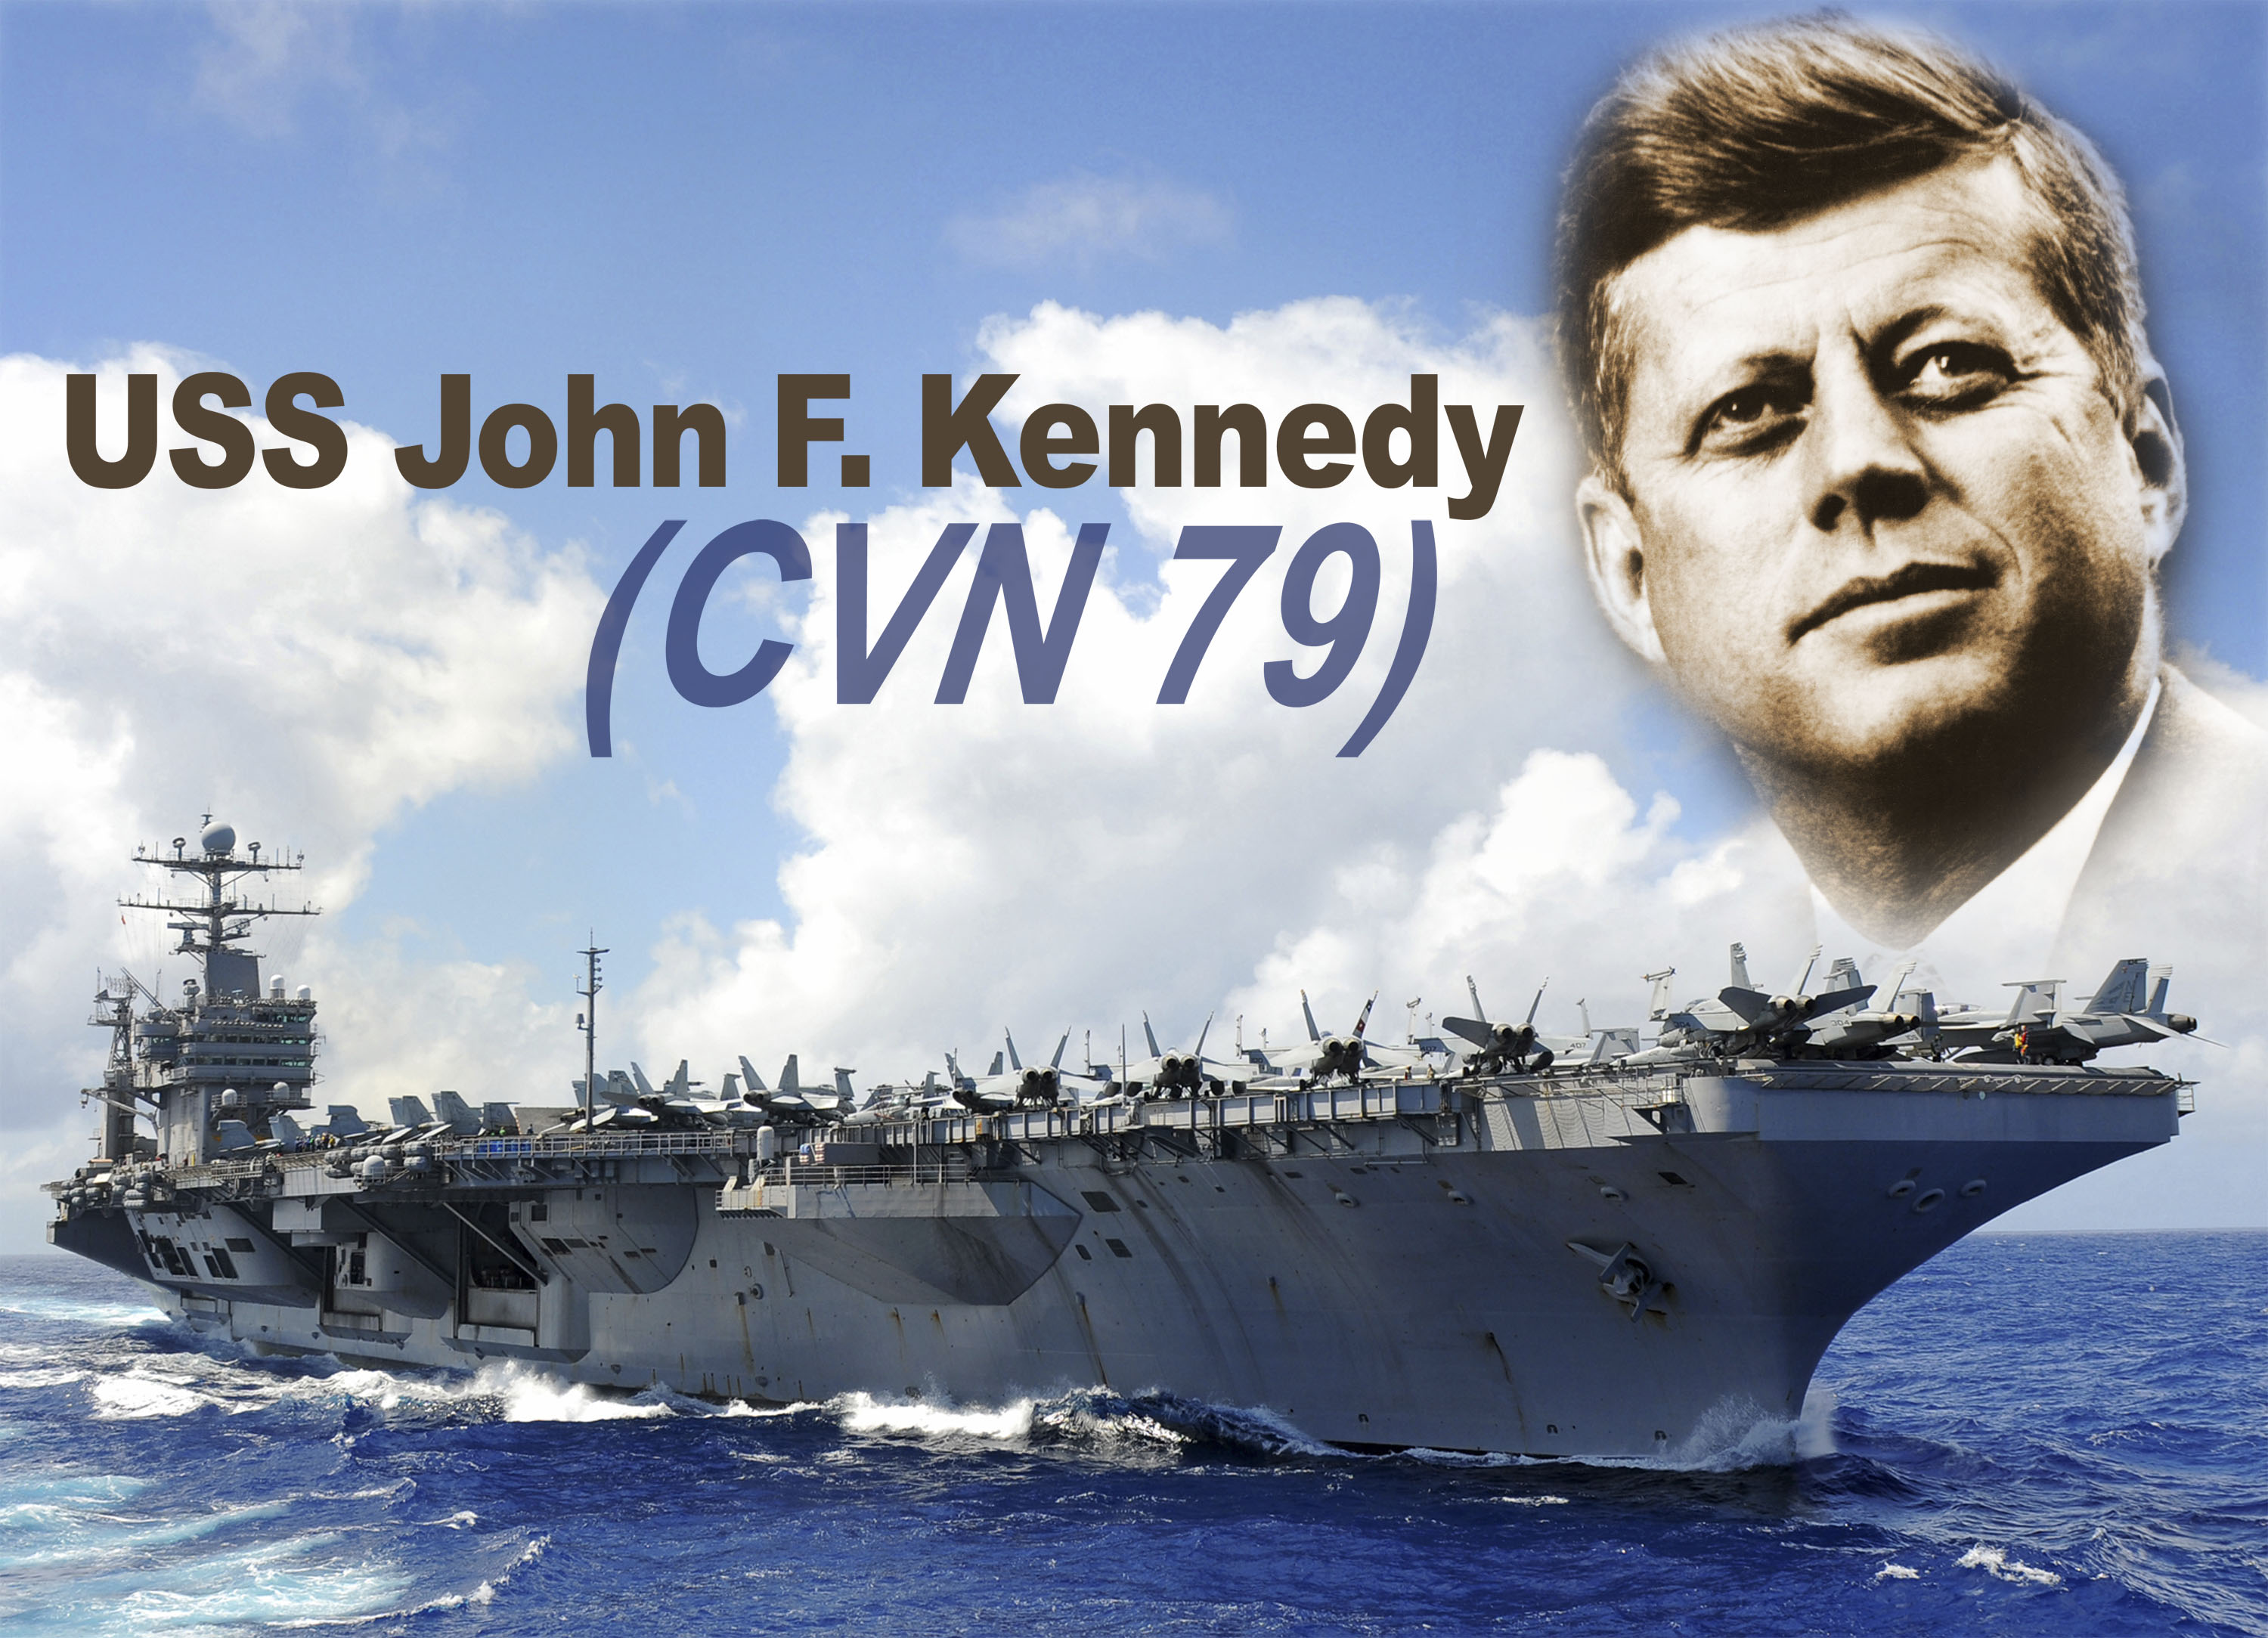 USS JOHN F. KENNEDY CVN-79 Illustration: U.S. Navy